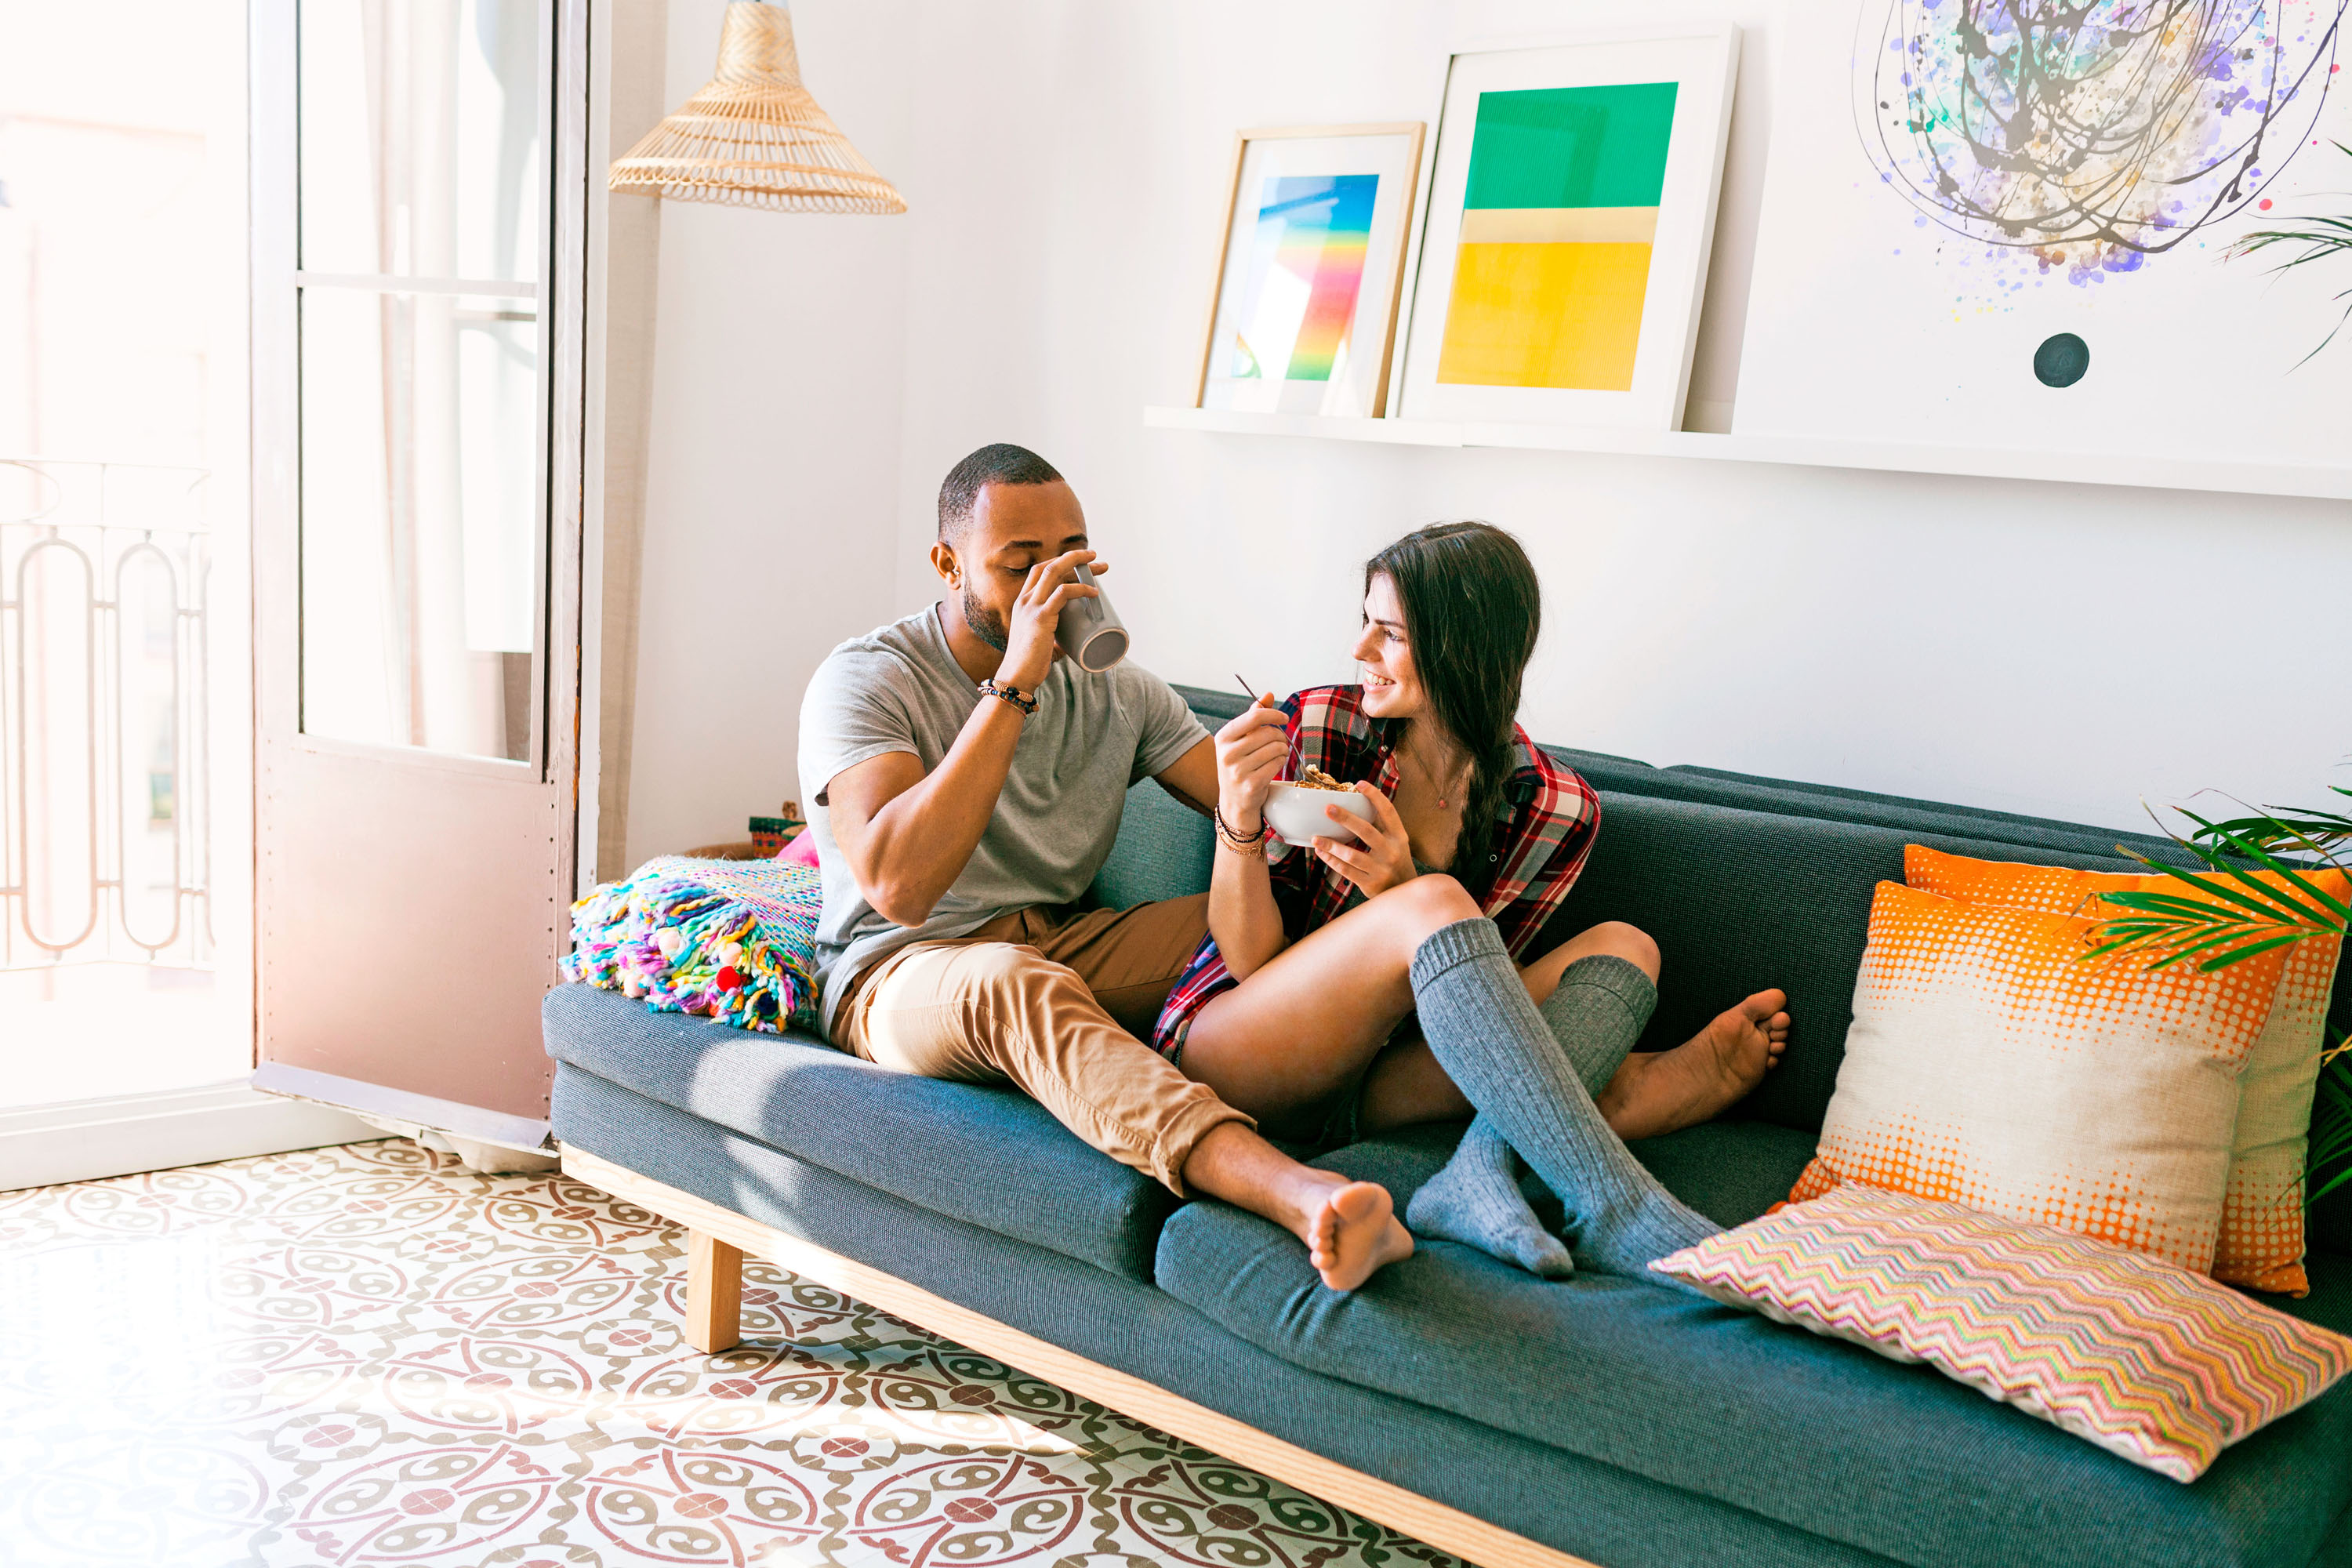 couple sitting on couch eating and drinking together